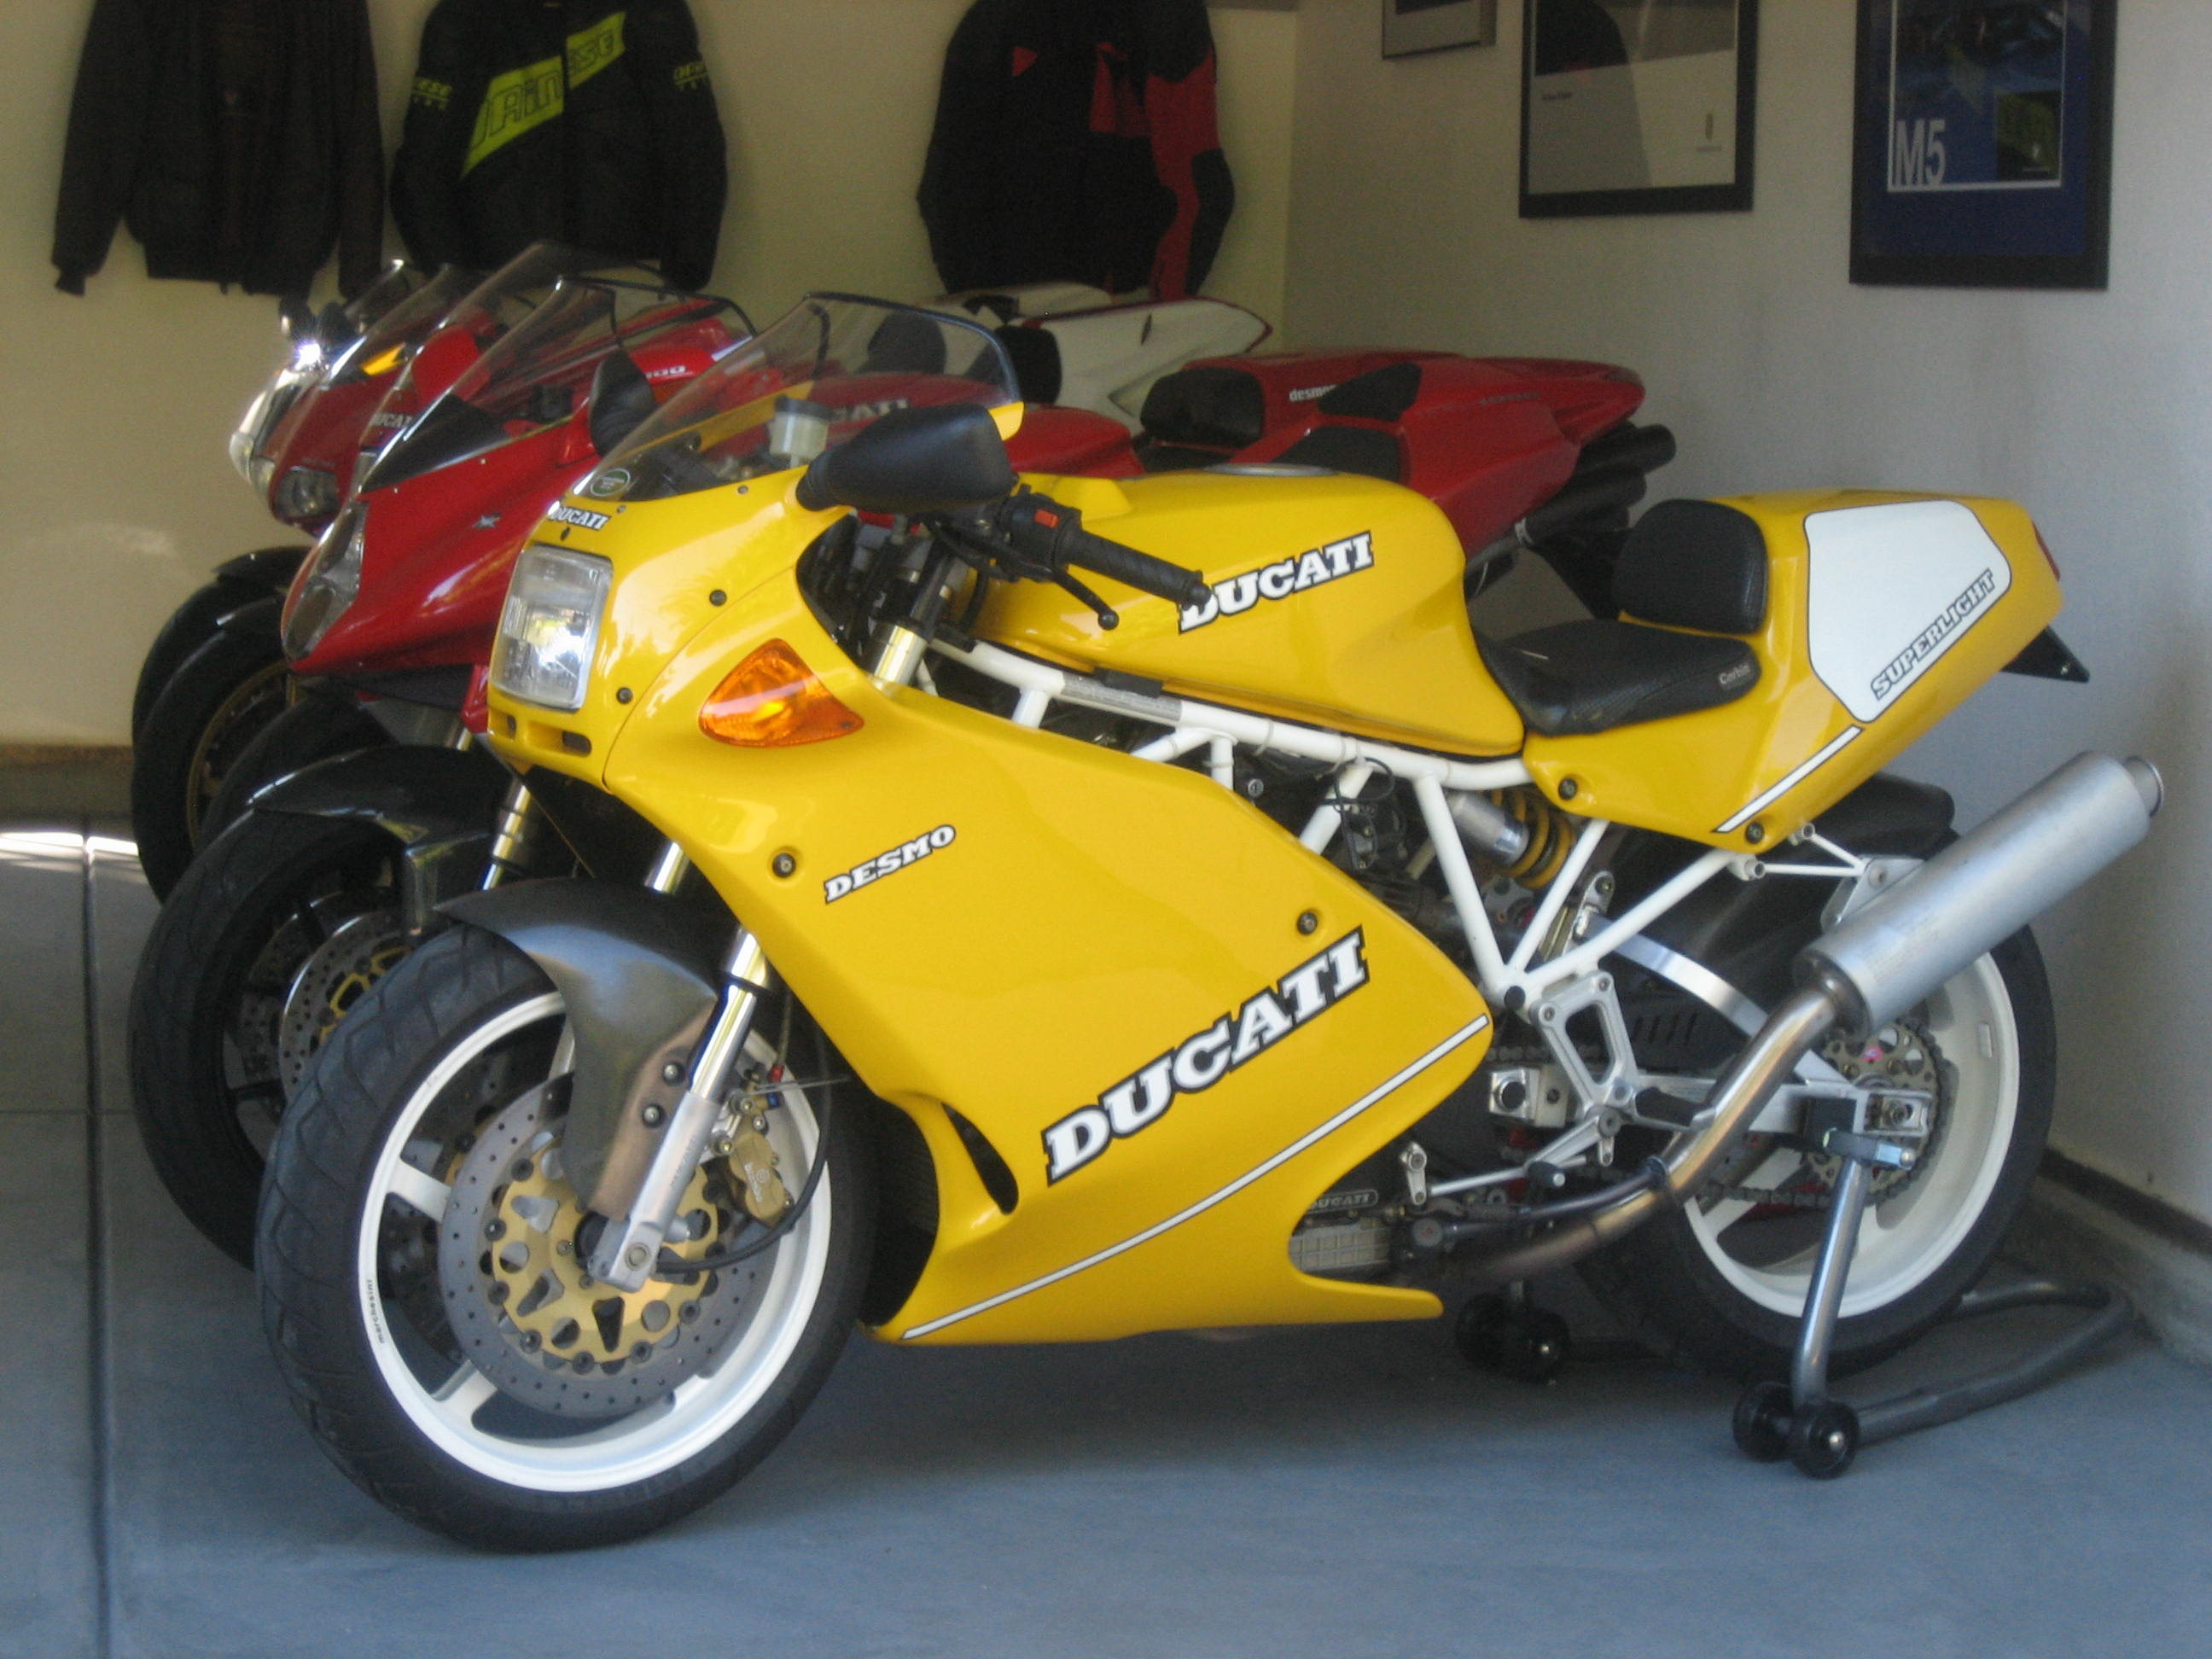 Ducati Superlight Motorcycles For Sale